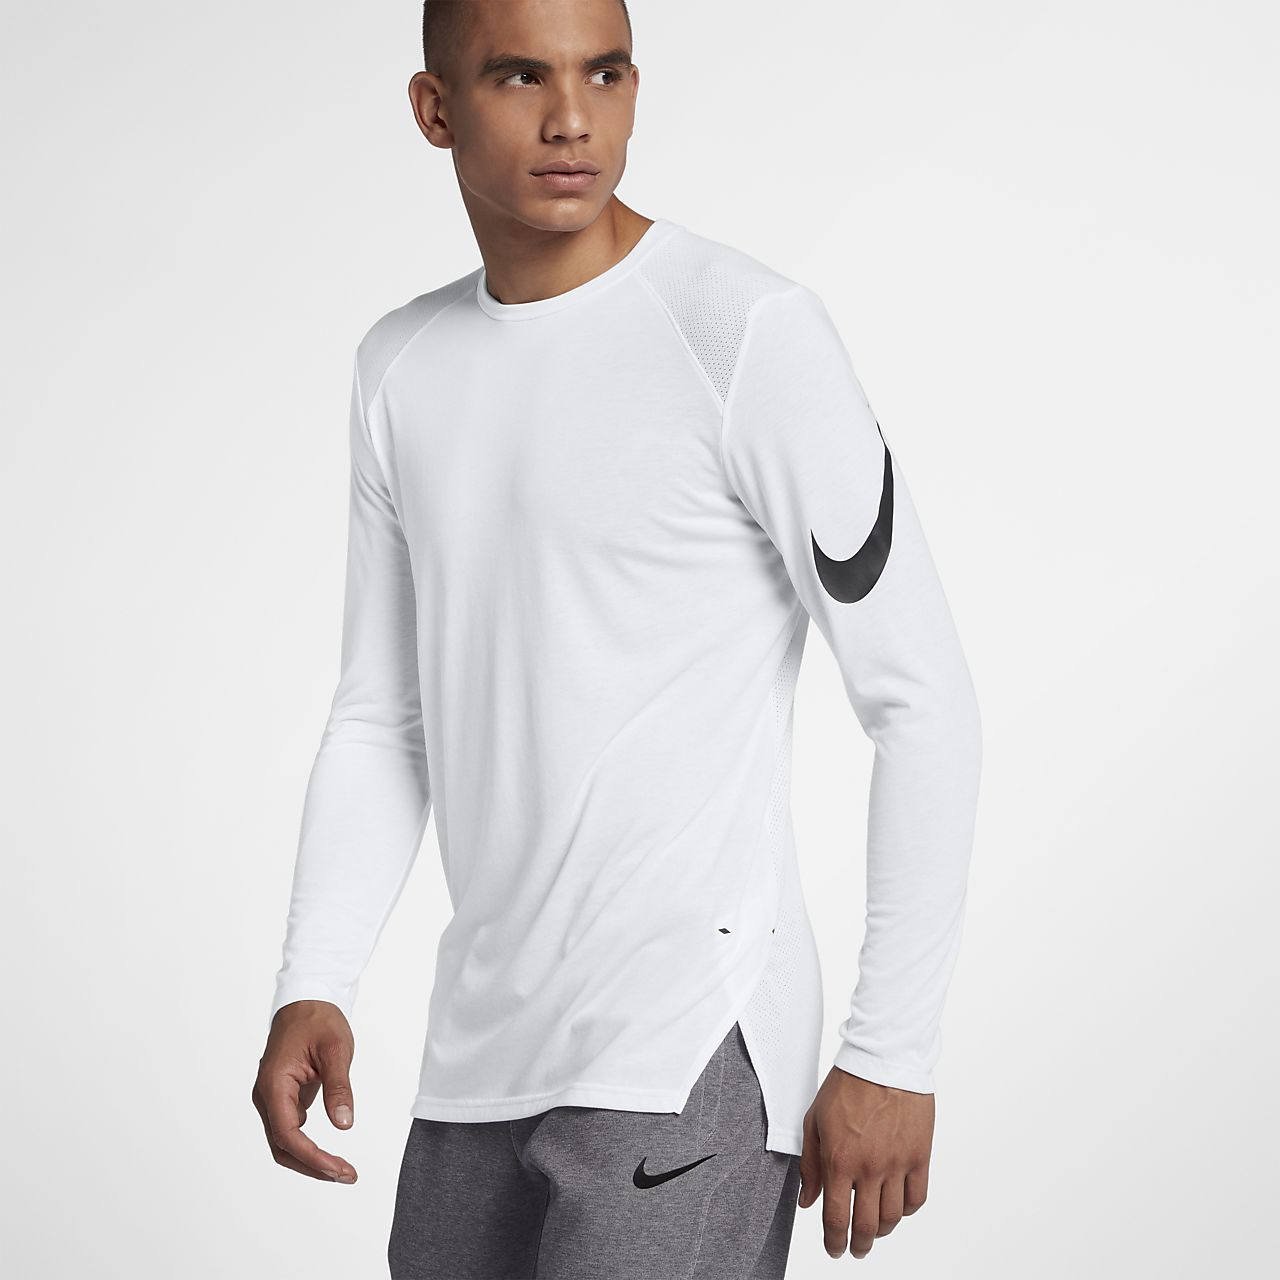 ... Nike Breathe Elite Men's Long-Sleeve Basketball Top